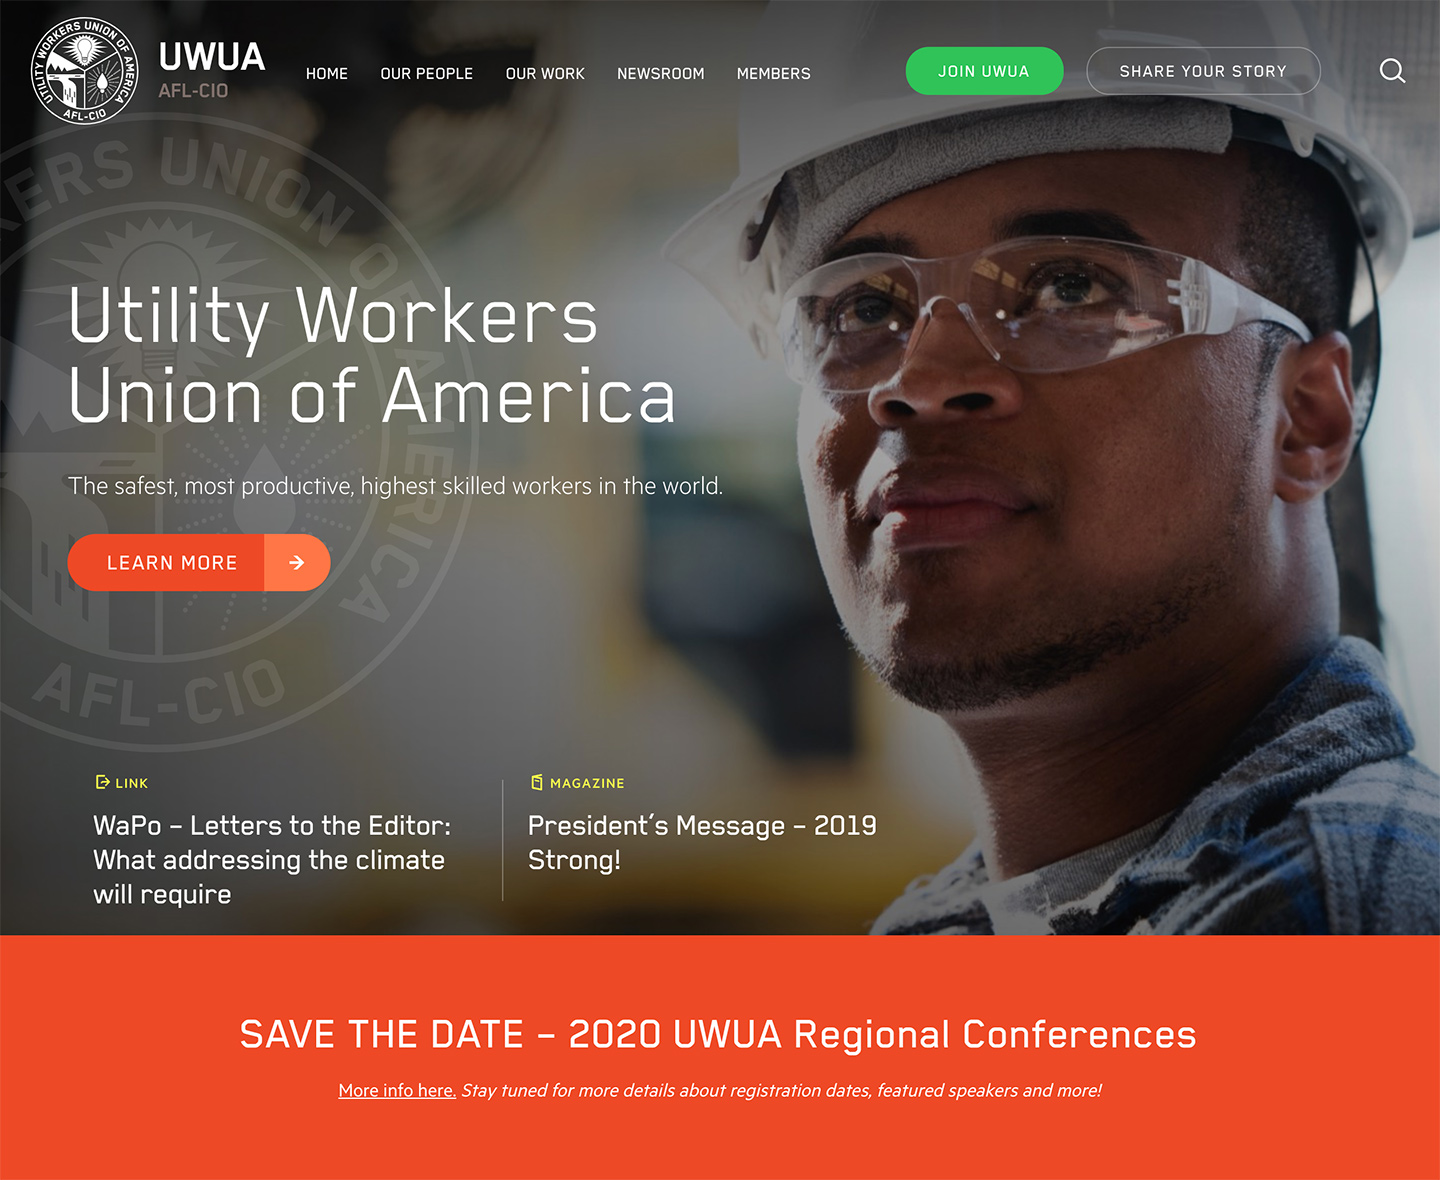 Utility Workers Union of America (UWUA): UWUA Utility Workers Union of America - Home